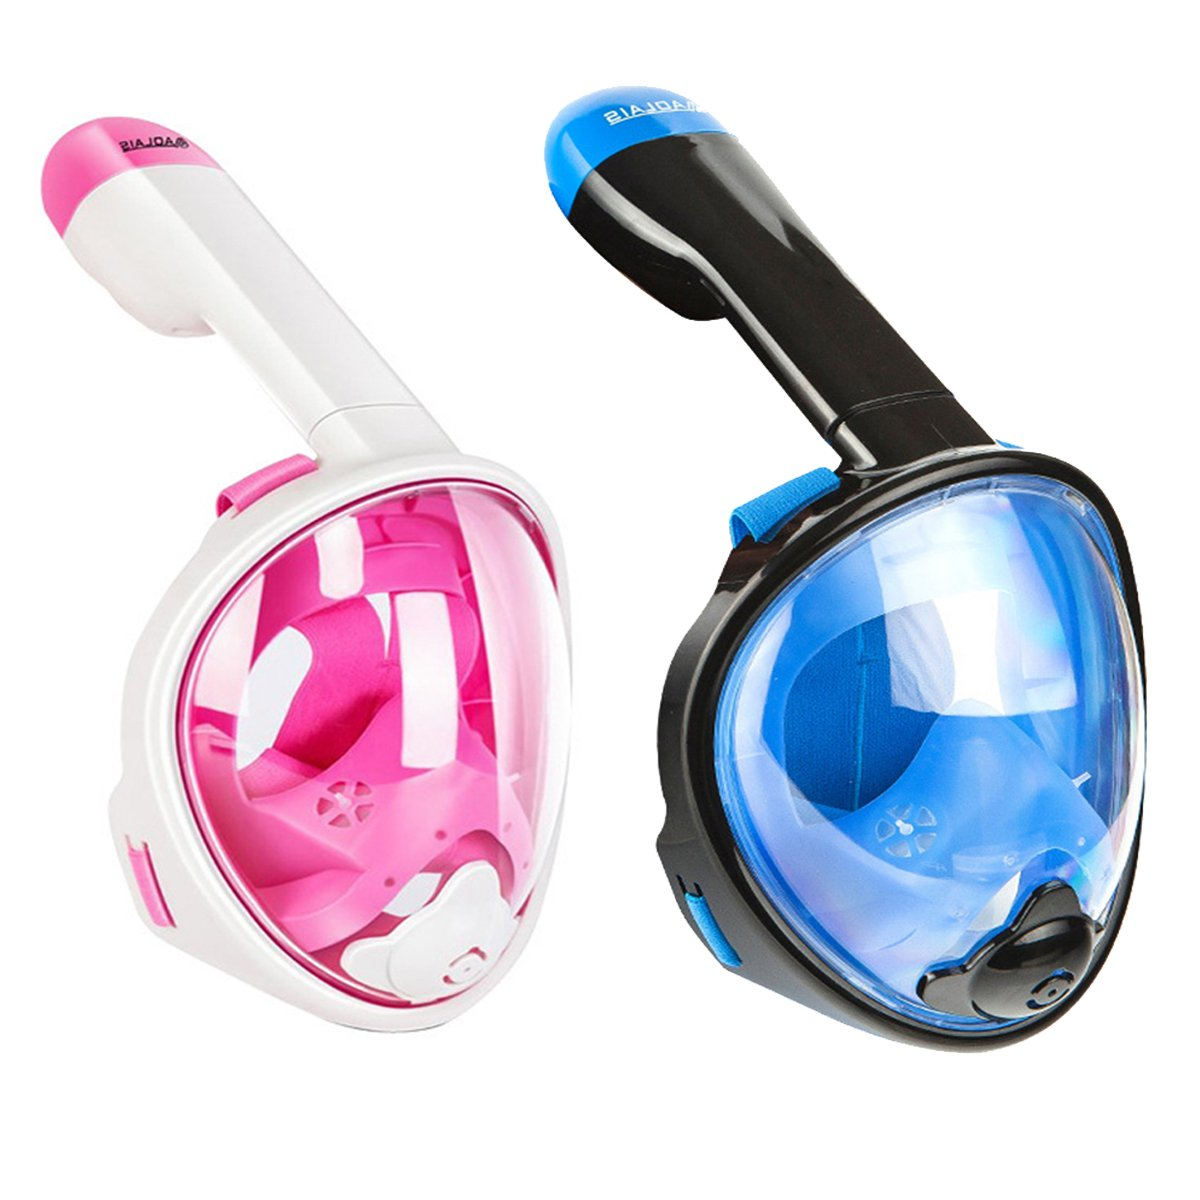 Panoramic Snorkel Mask 180° Larger Viewing Area Full Face Free Breathing Design Detachable Anti-Fog Swimming Equipment For Adults And Youth 2 Pieces,B,L